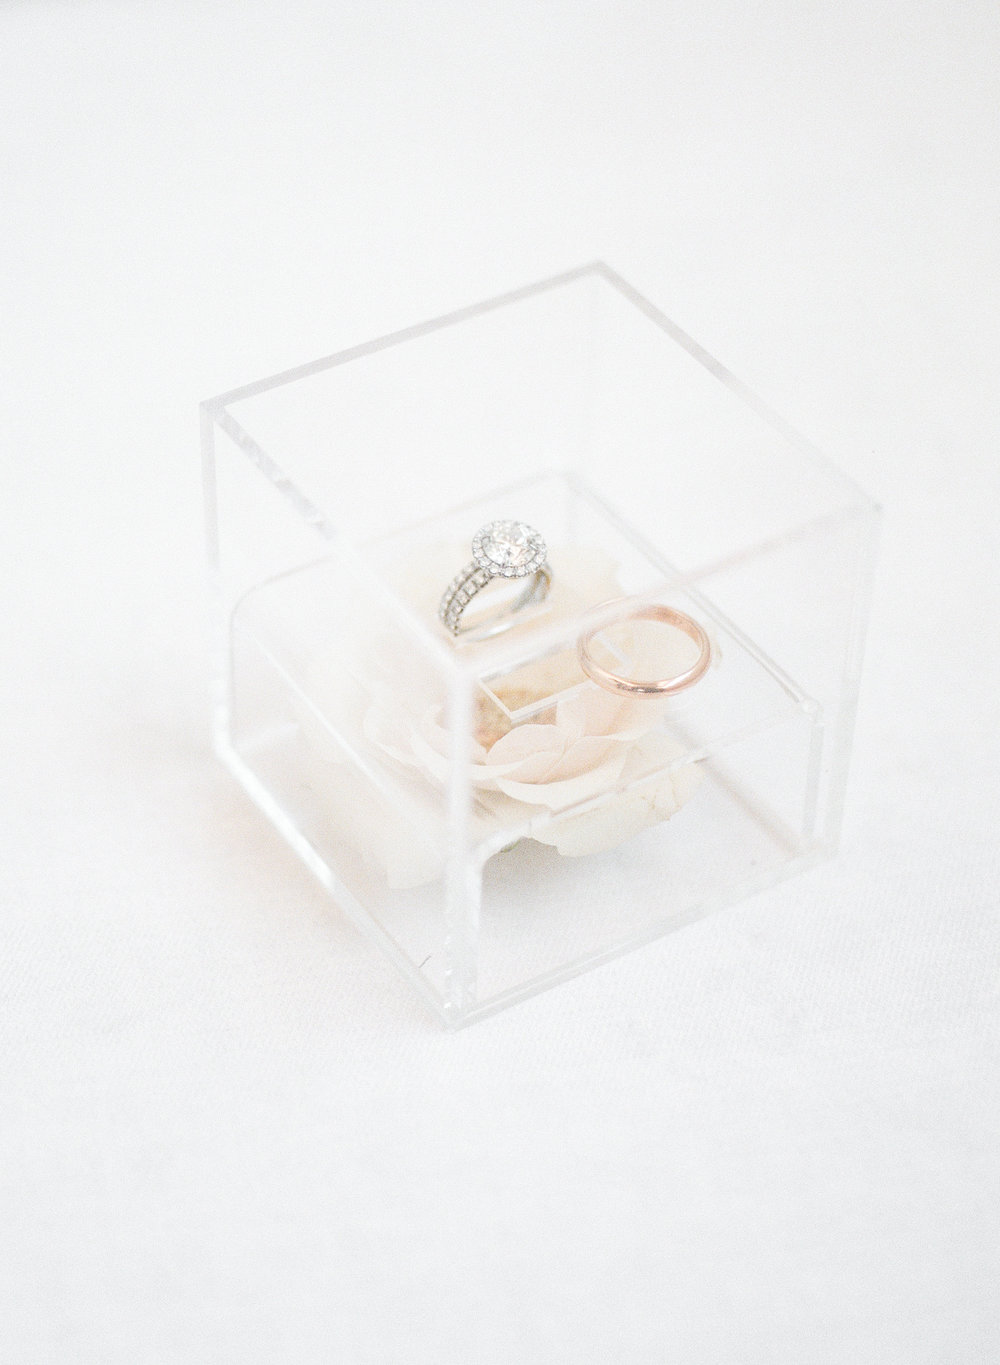 wedding rings in lucite box